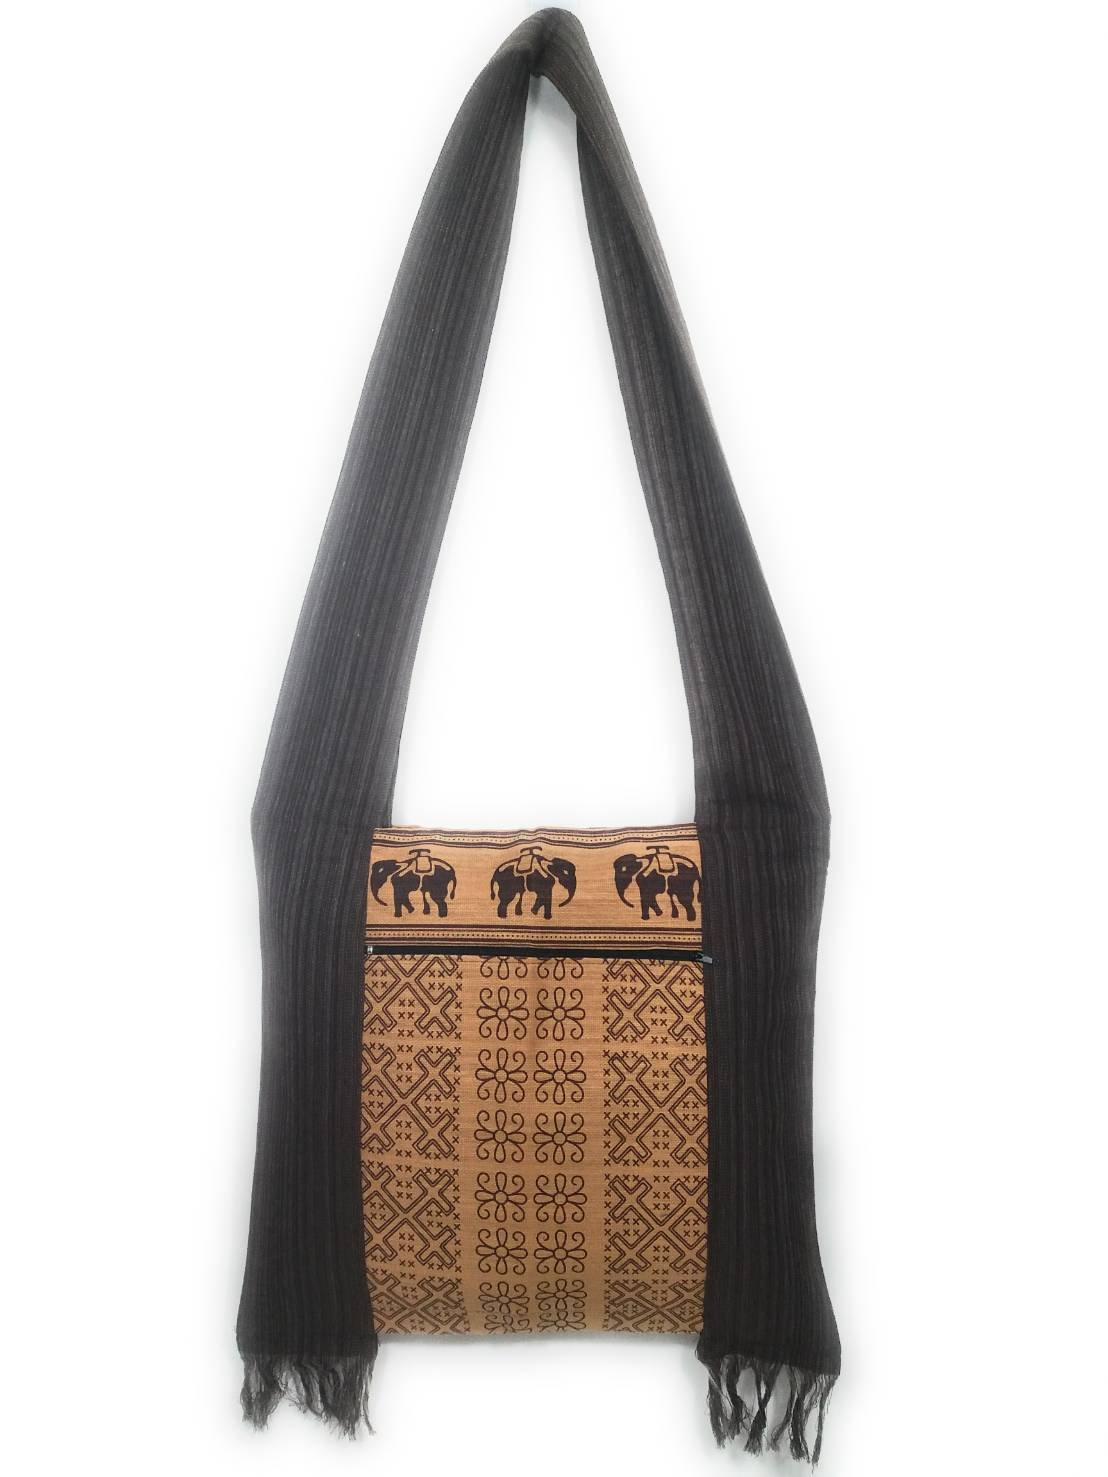 Kraft4Life NEW!!! Vintage Thai Cotton Hippie Hobo Sling Crossbody Bag Messenger Purse Ethnic Elephant Parade Christmas Gift (VT-BROWN1)